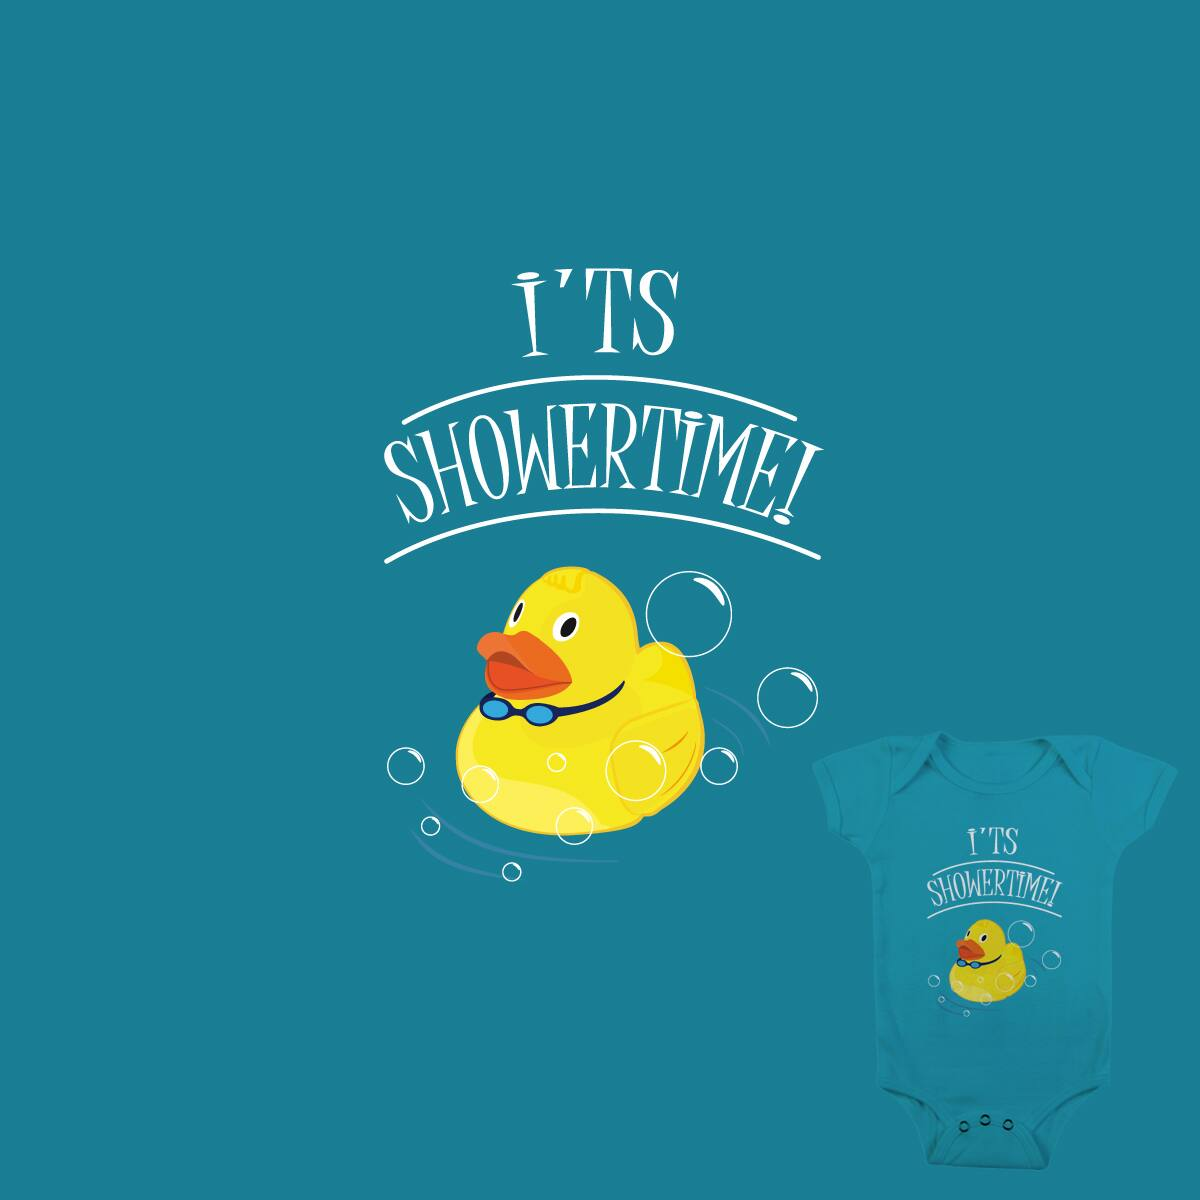 Score It\'s Showertime by D.fOx on Threadless